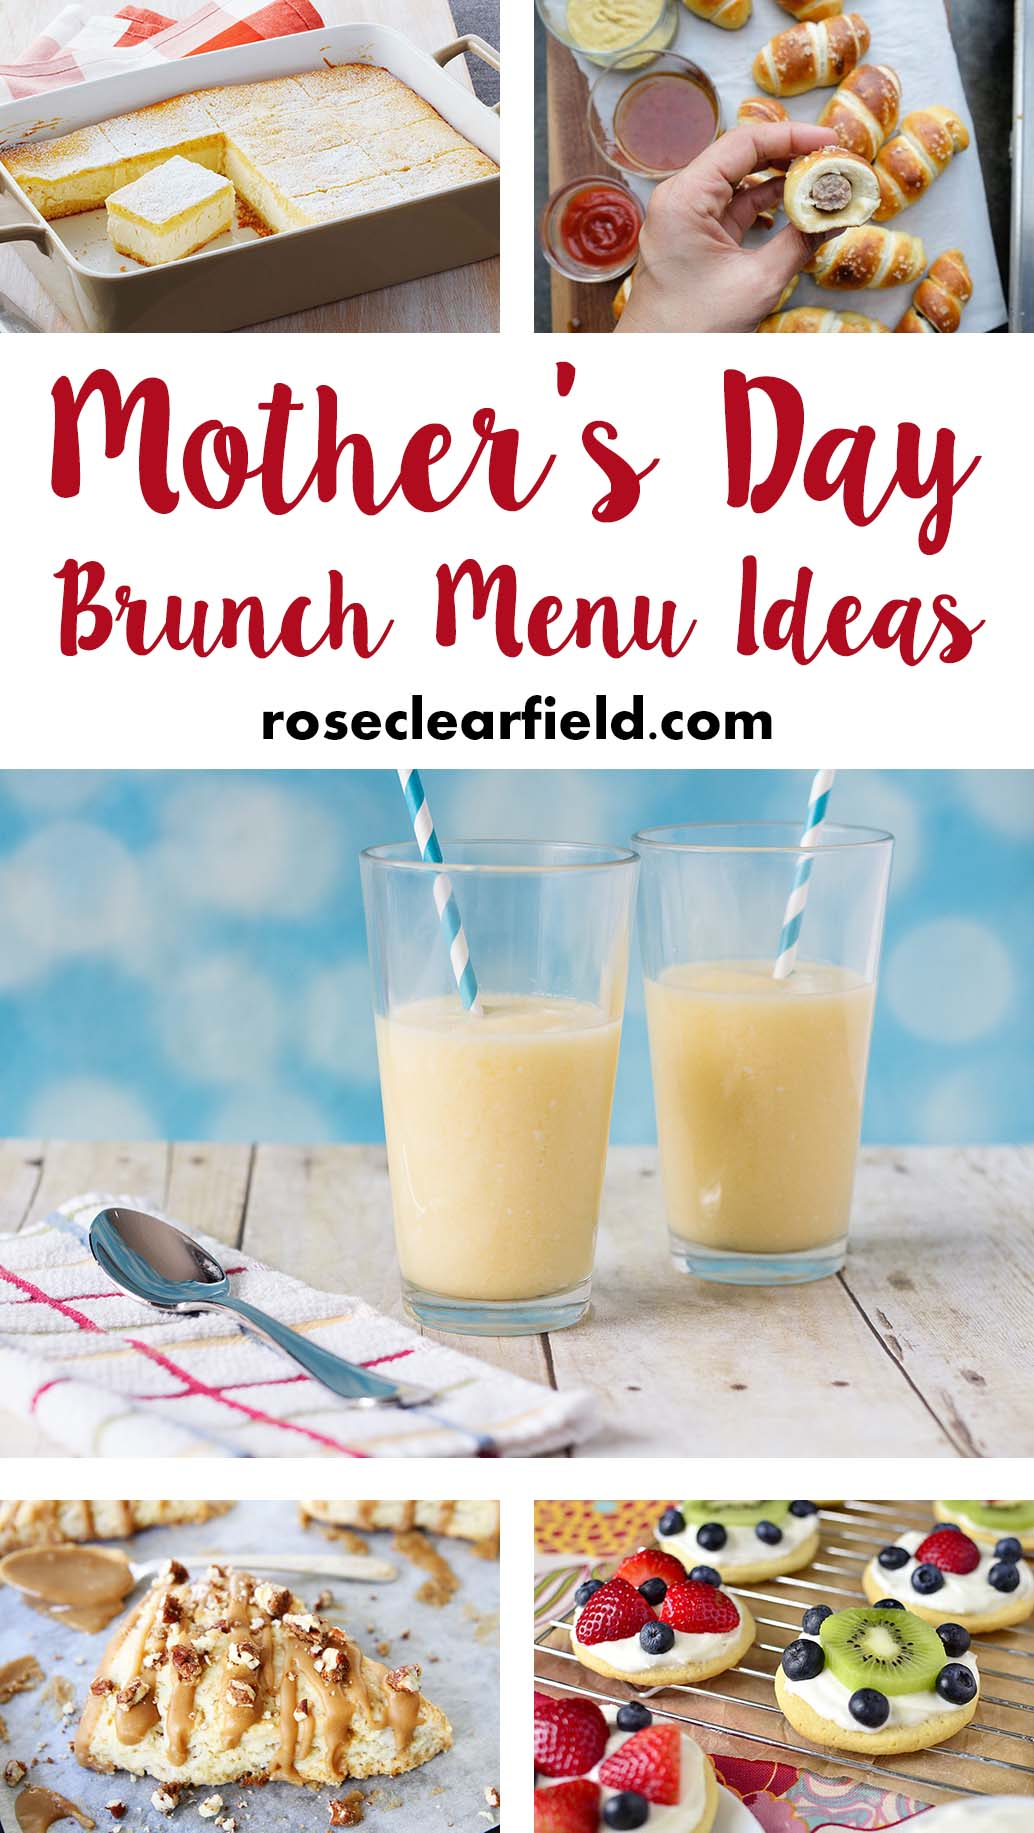 mother 39 s day brunch menu ideas rose clearfield. Black Bedroom Furniture Sets. Home Design Ideas